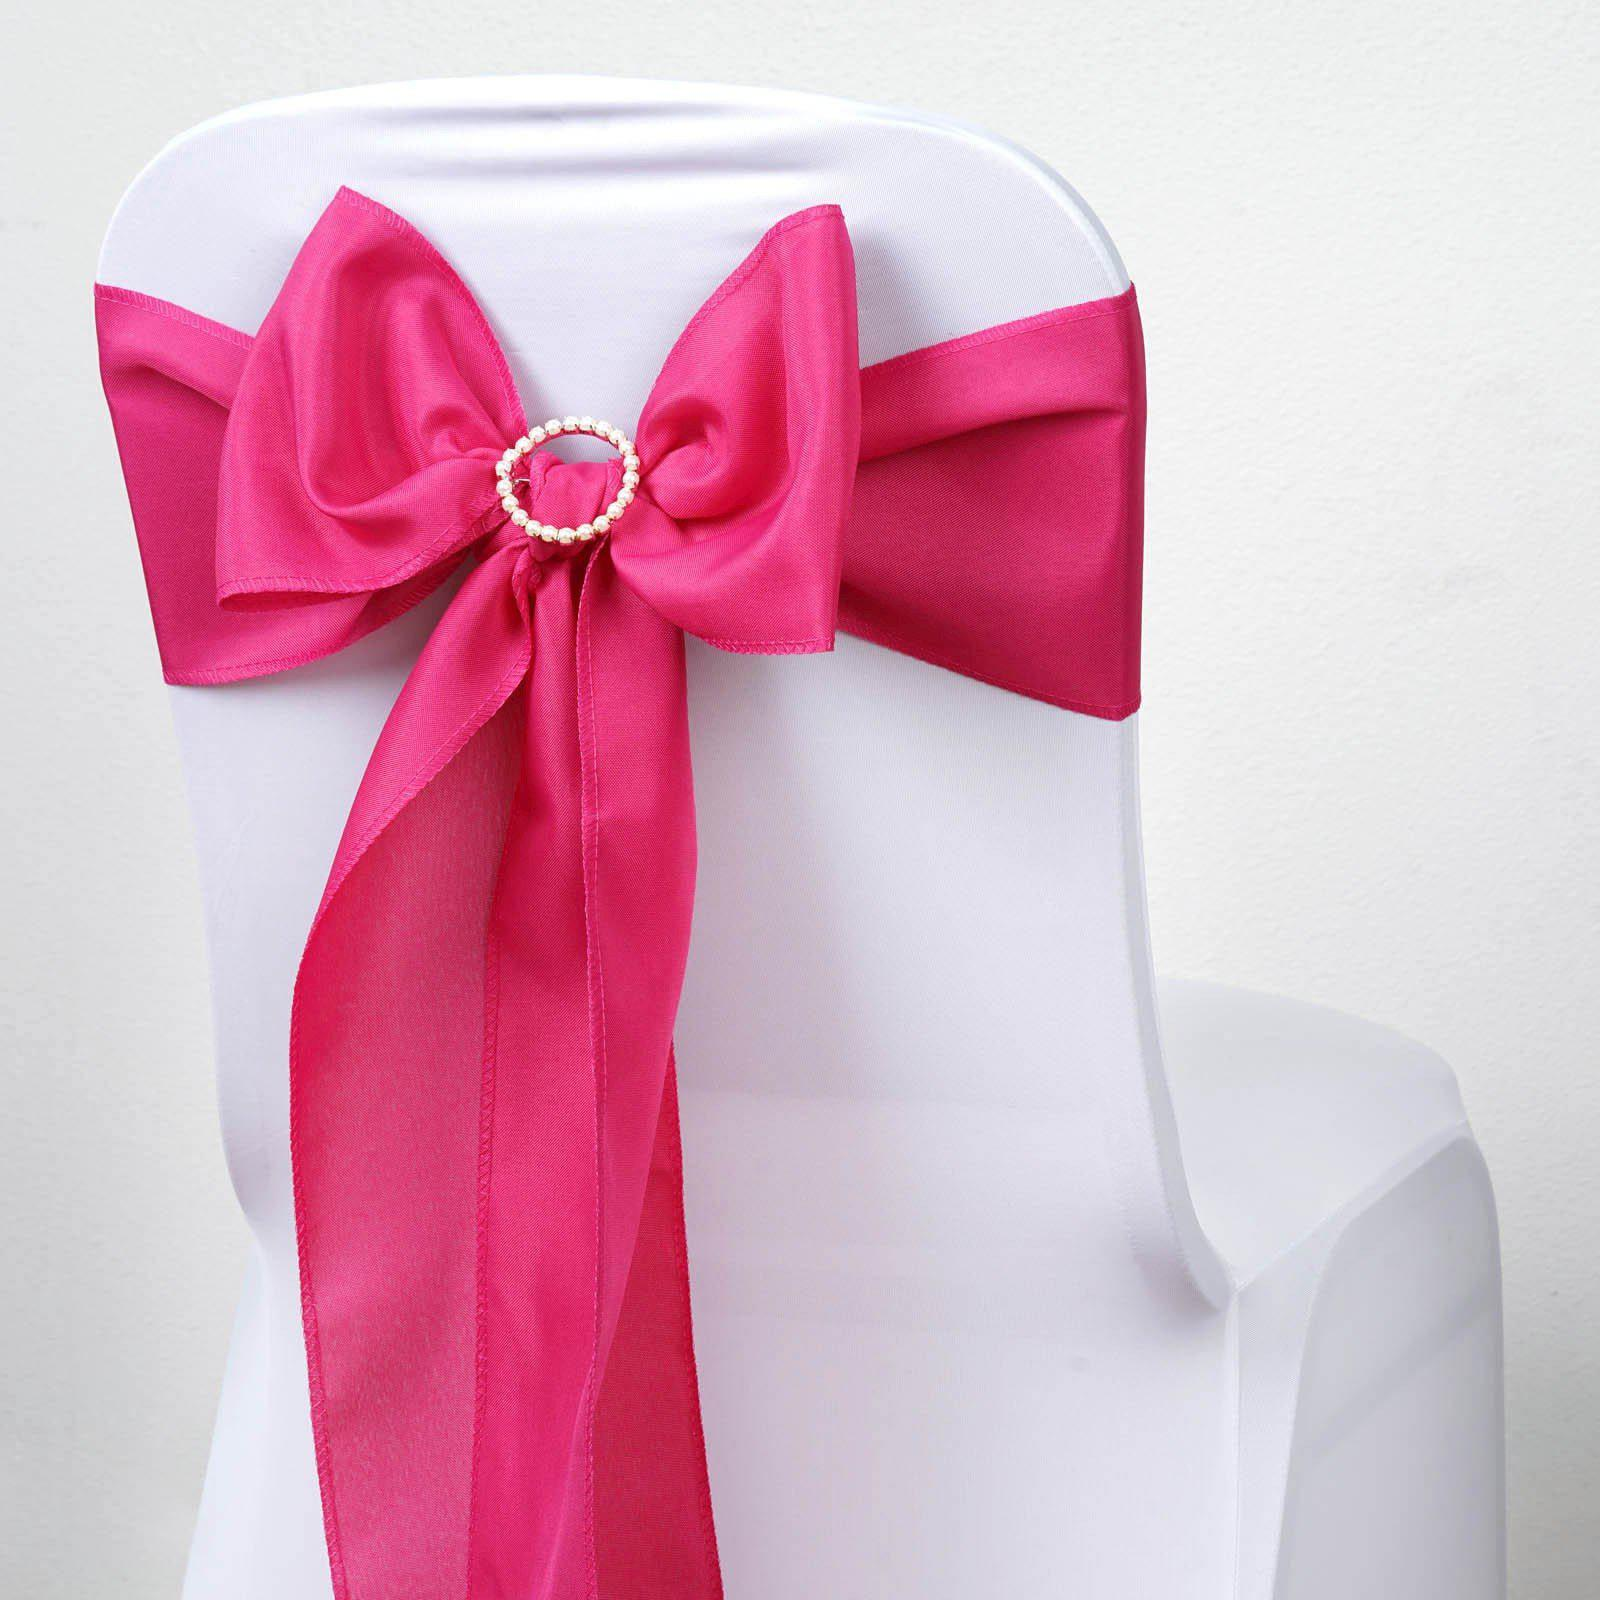 5 PCS FUSHIA Polyester Chair Sashes Tie Bows Catering Wedding Party ...